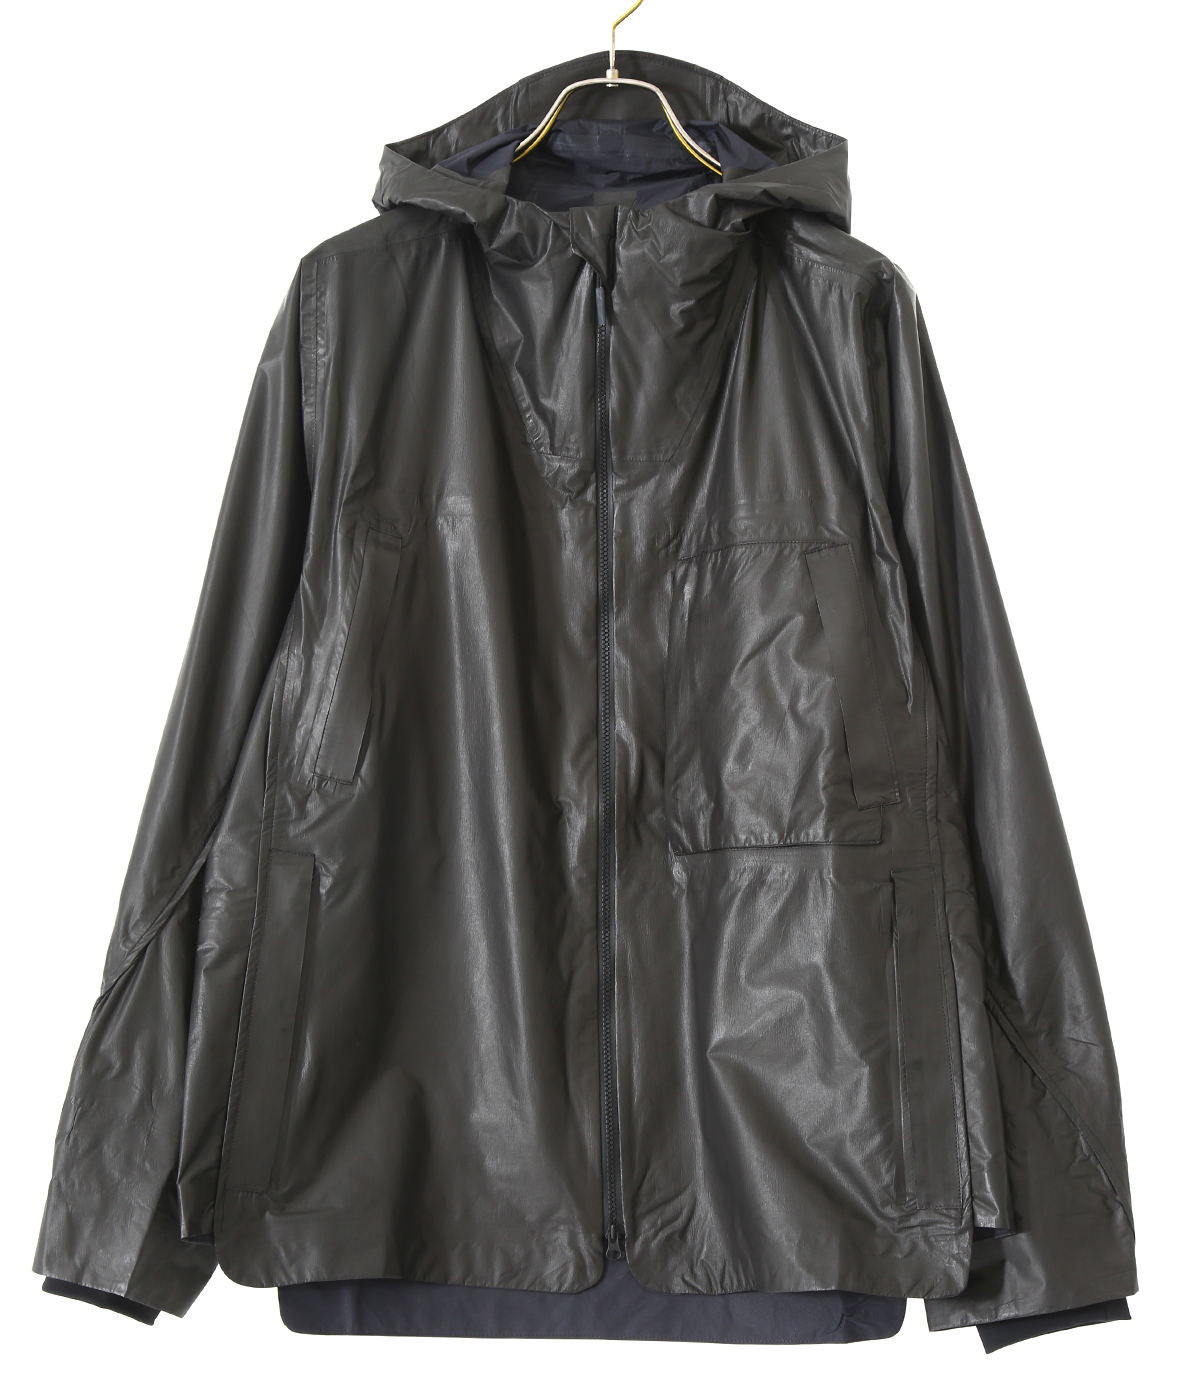 GORE HOODED JACKET